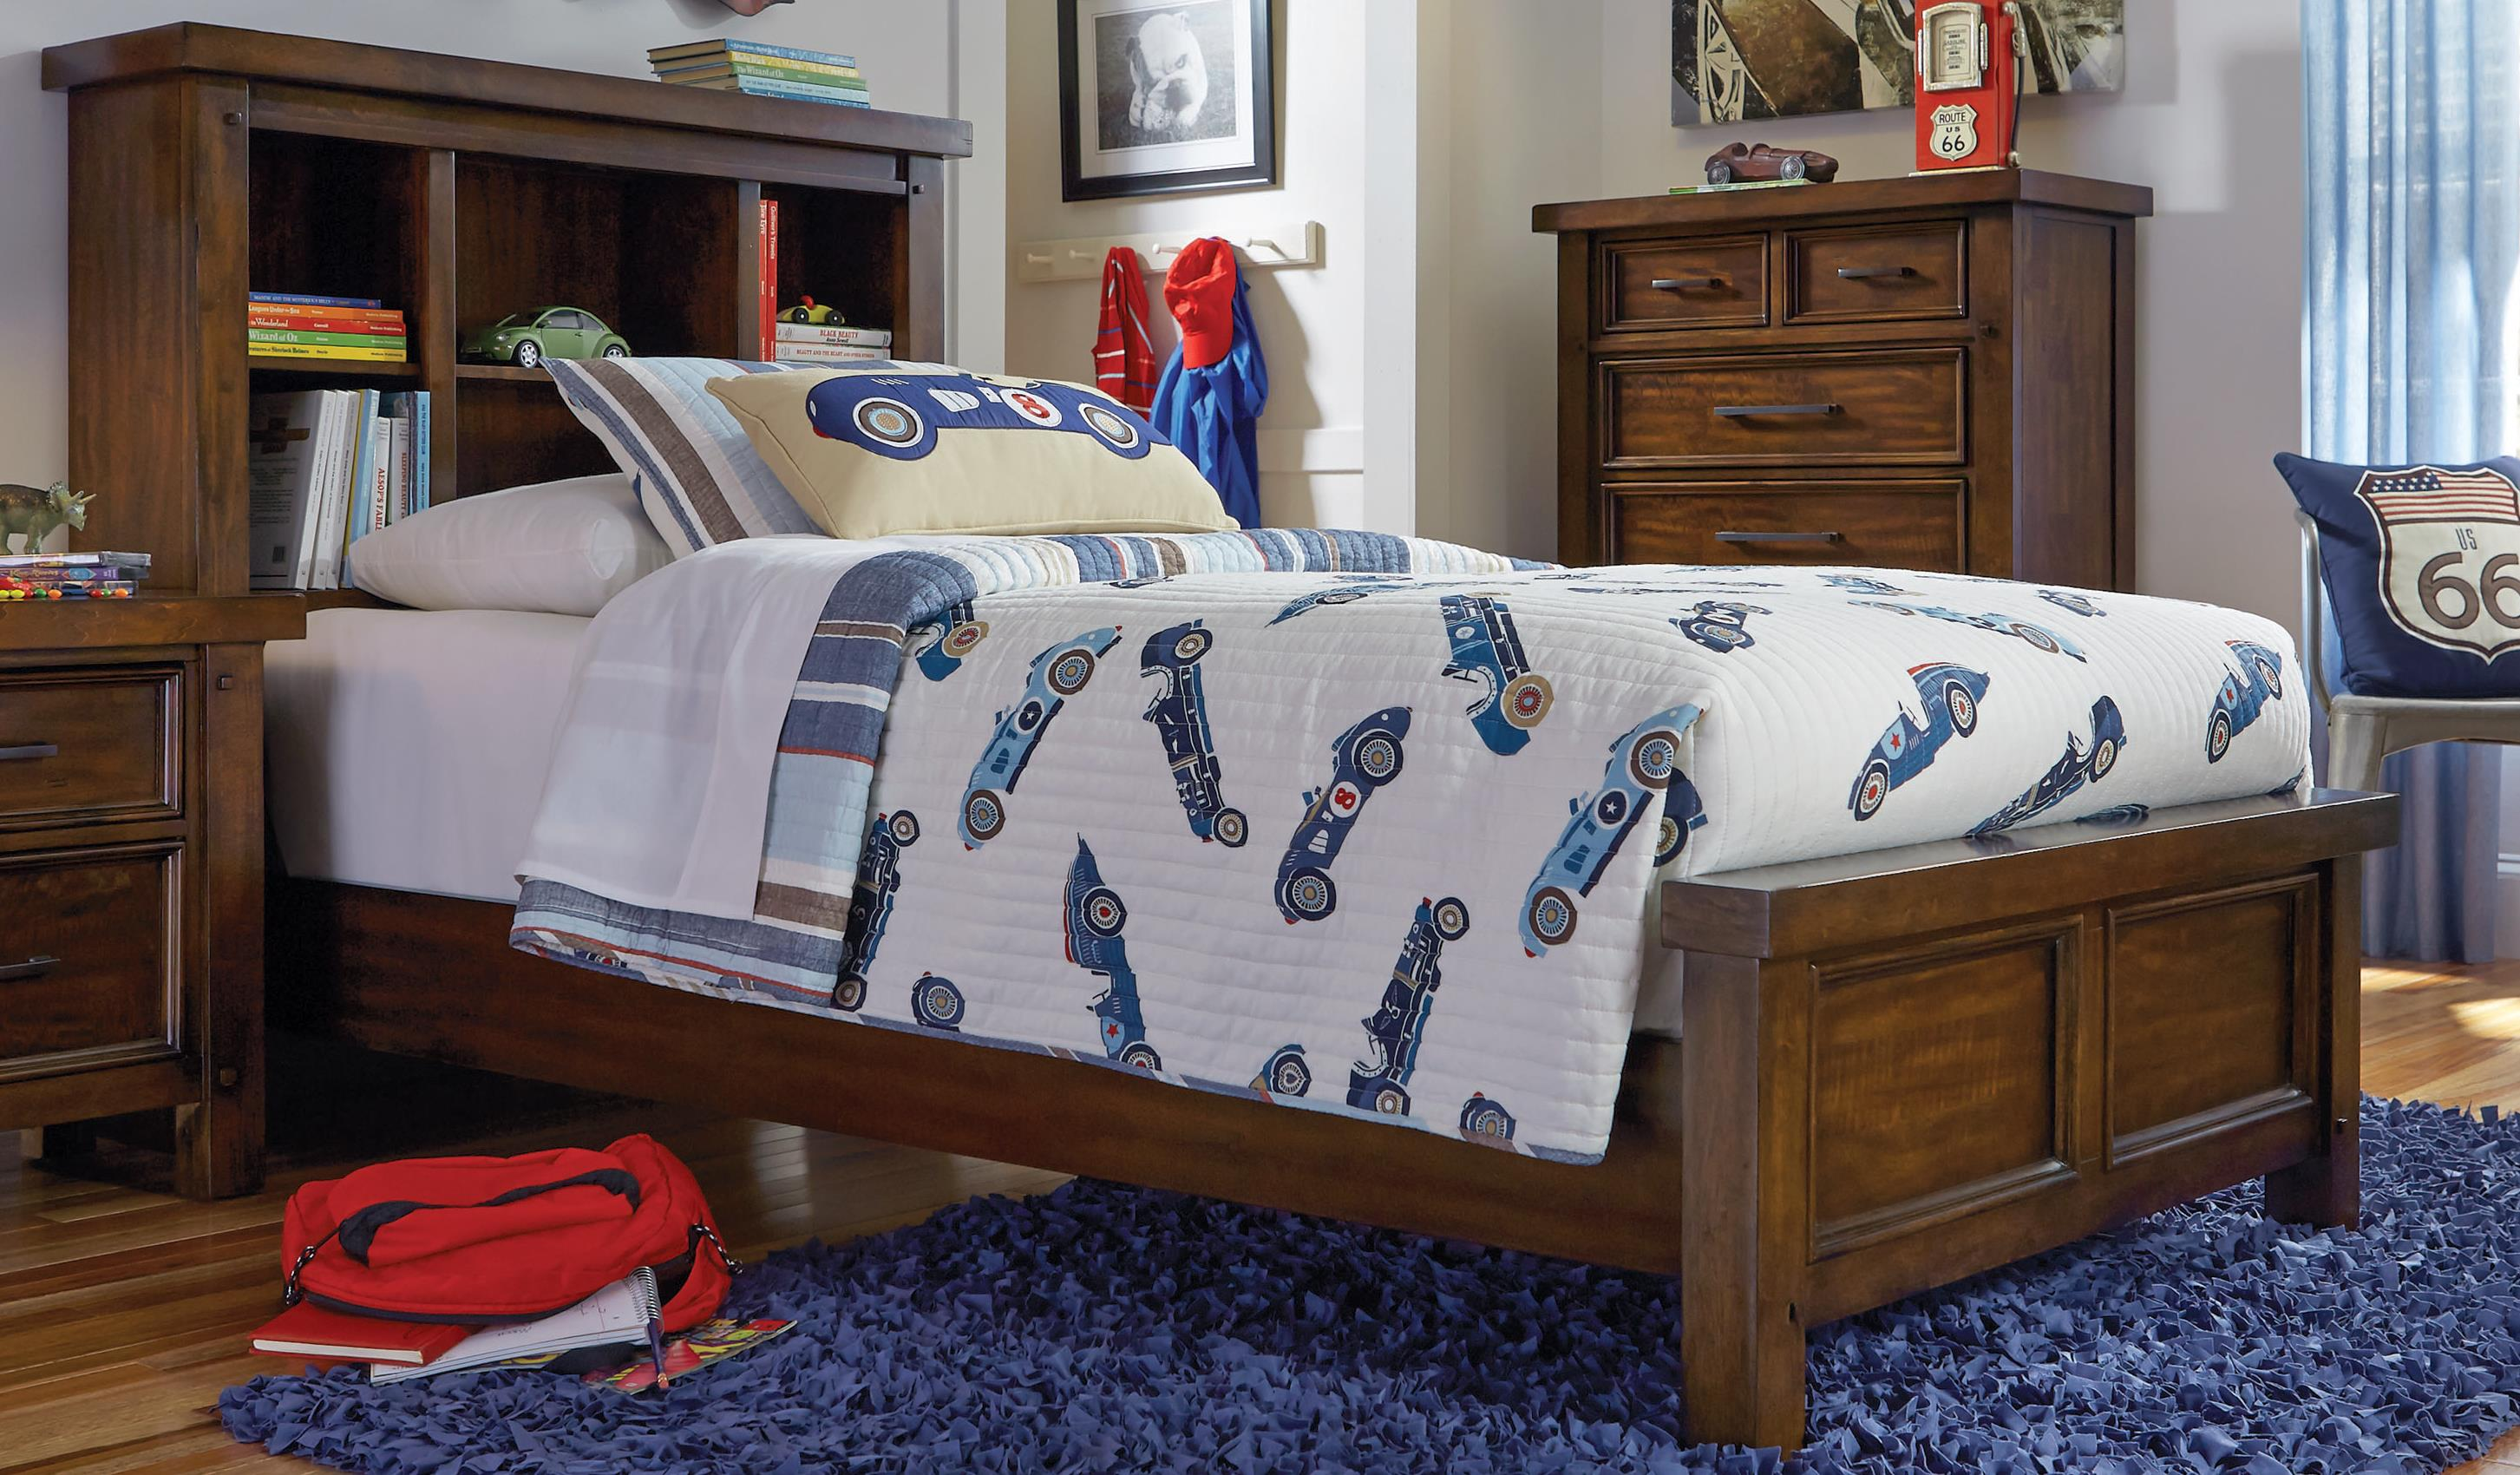 Sorrento Sorrento Full Bookcase Bed by Holland House at Morris Home